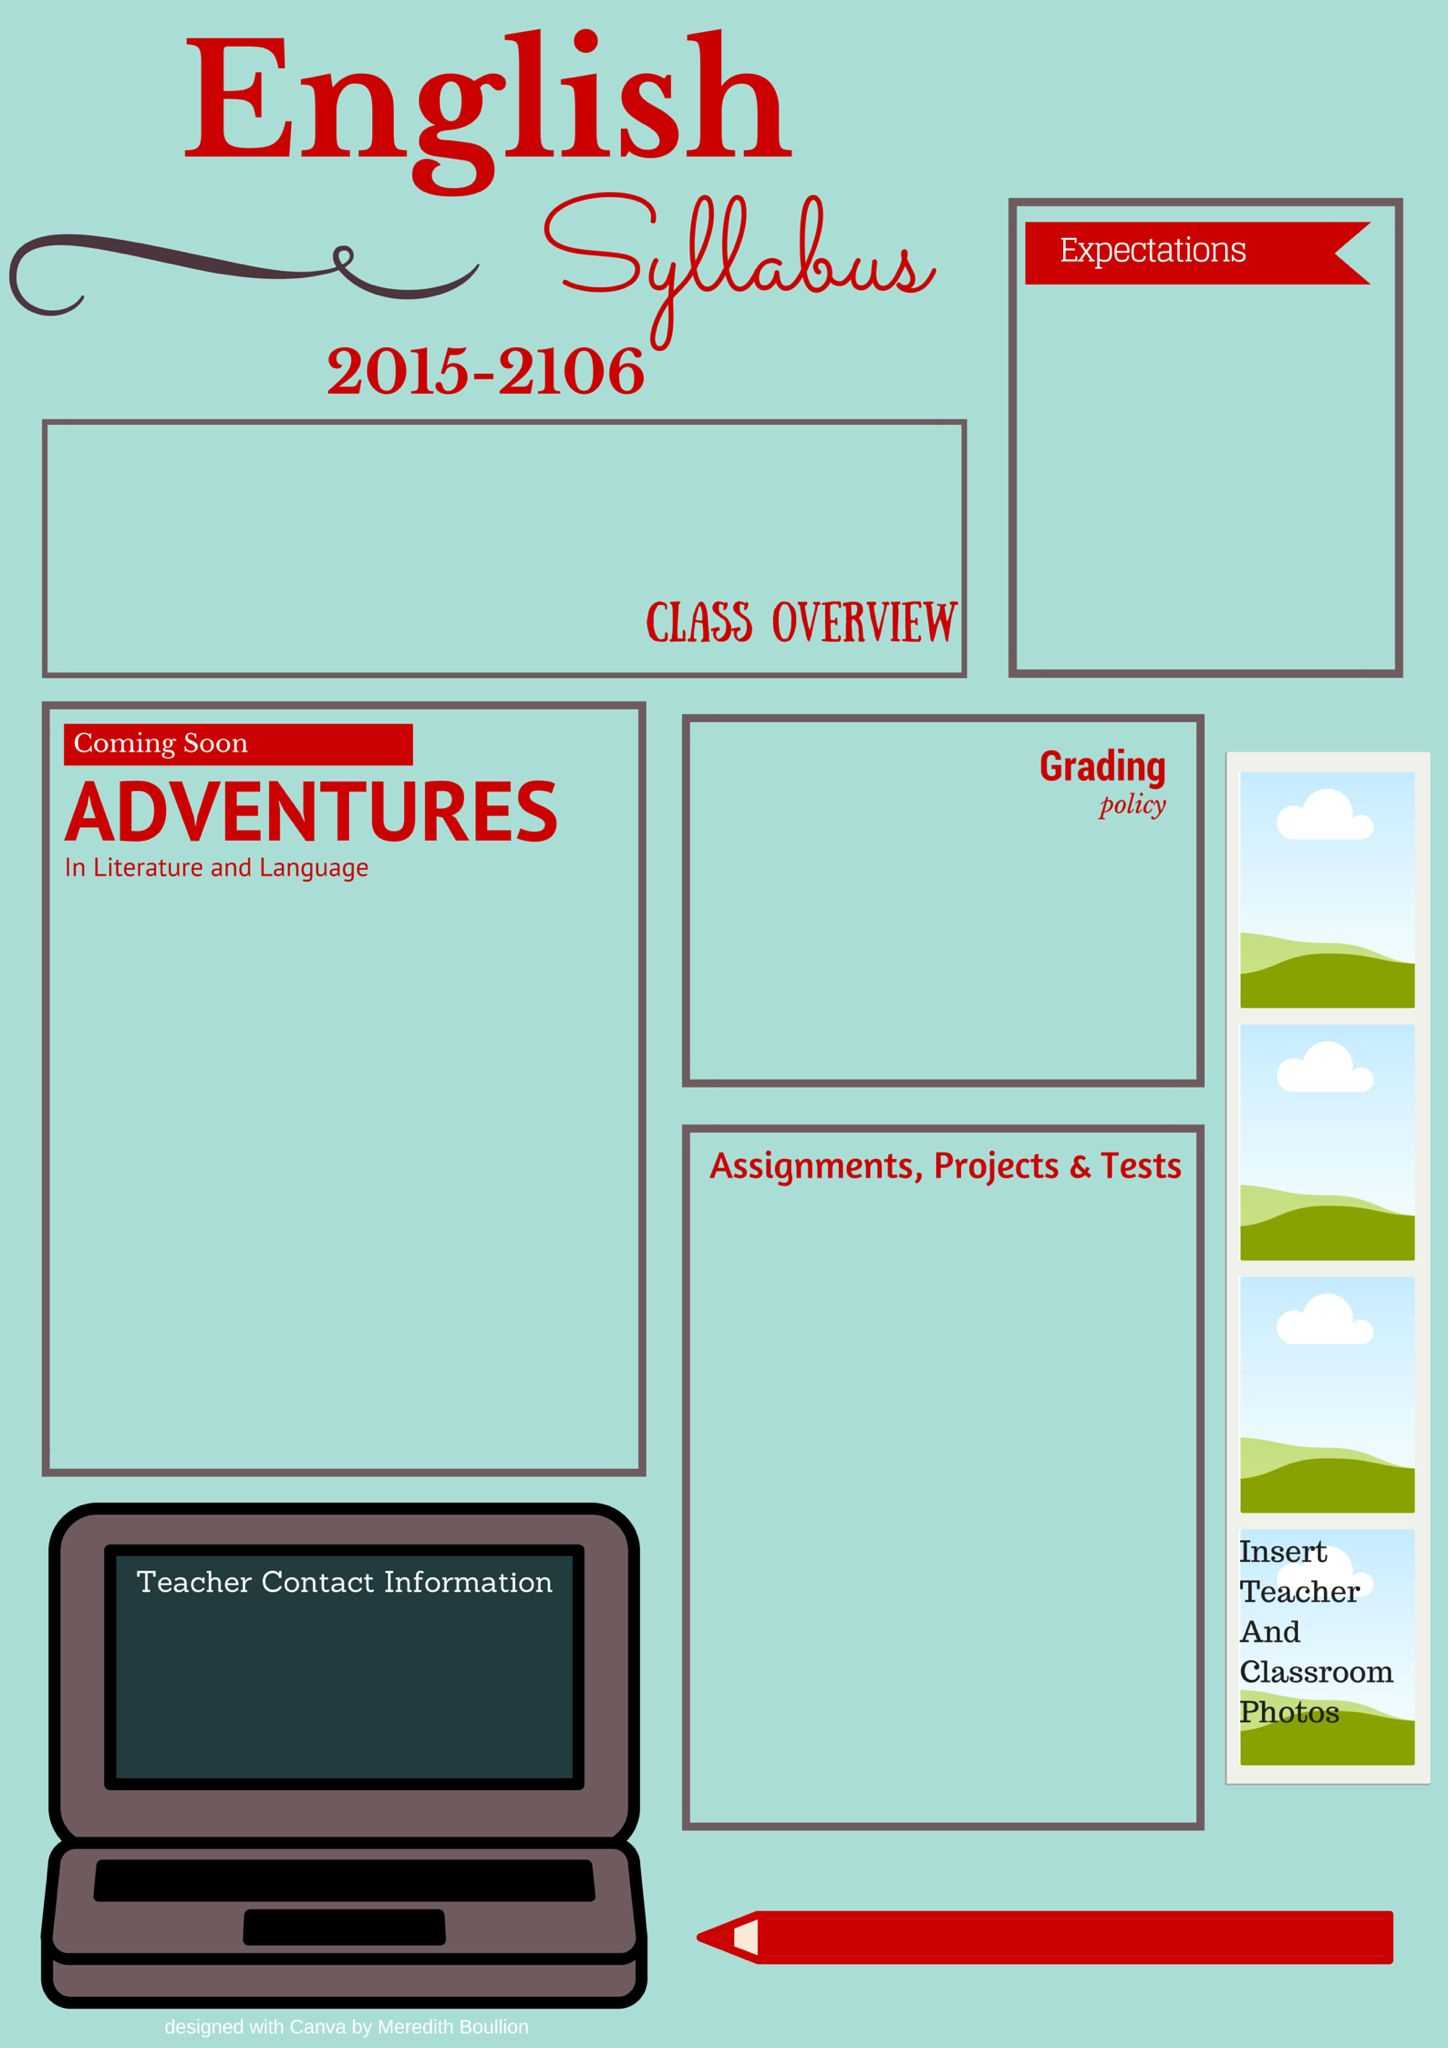 Visual Syllabus Template Made With Canva   High School Intended For Blank Syllabus Template